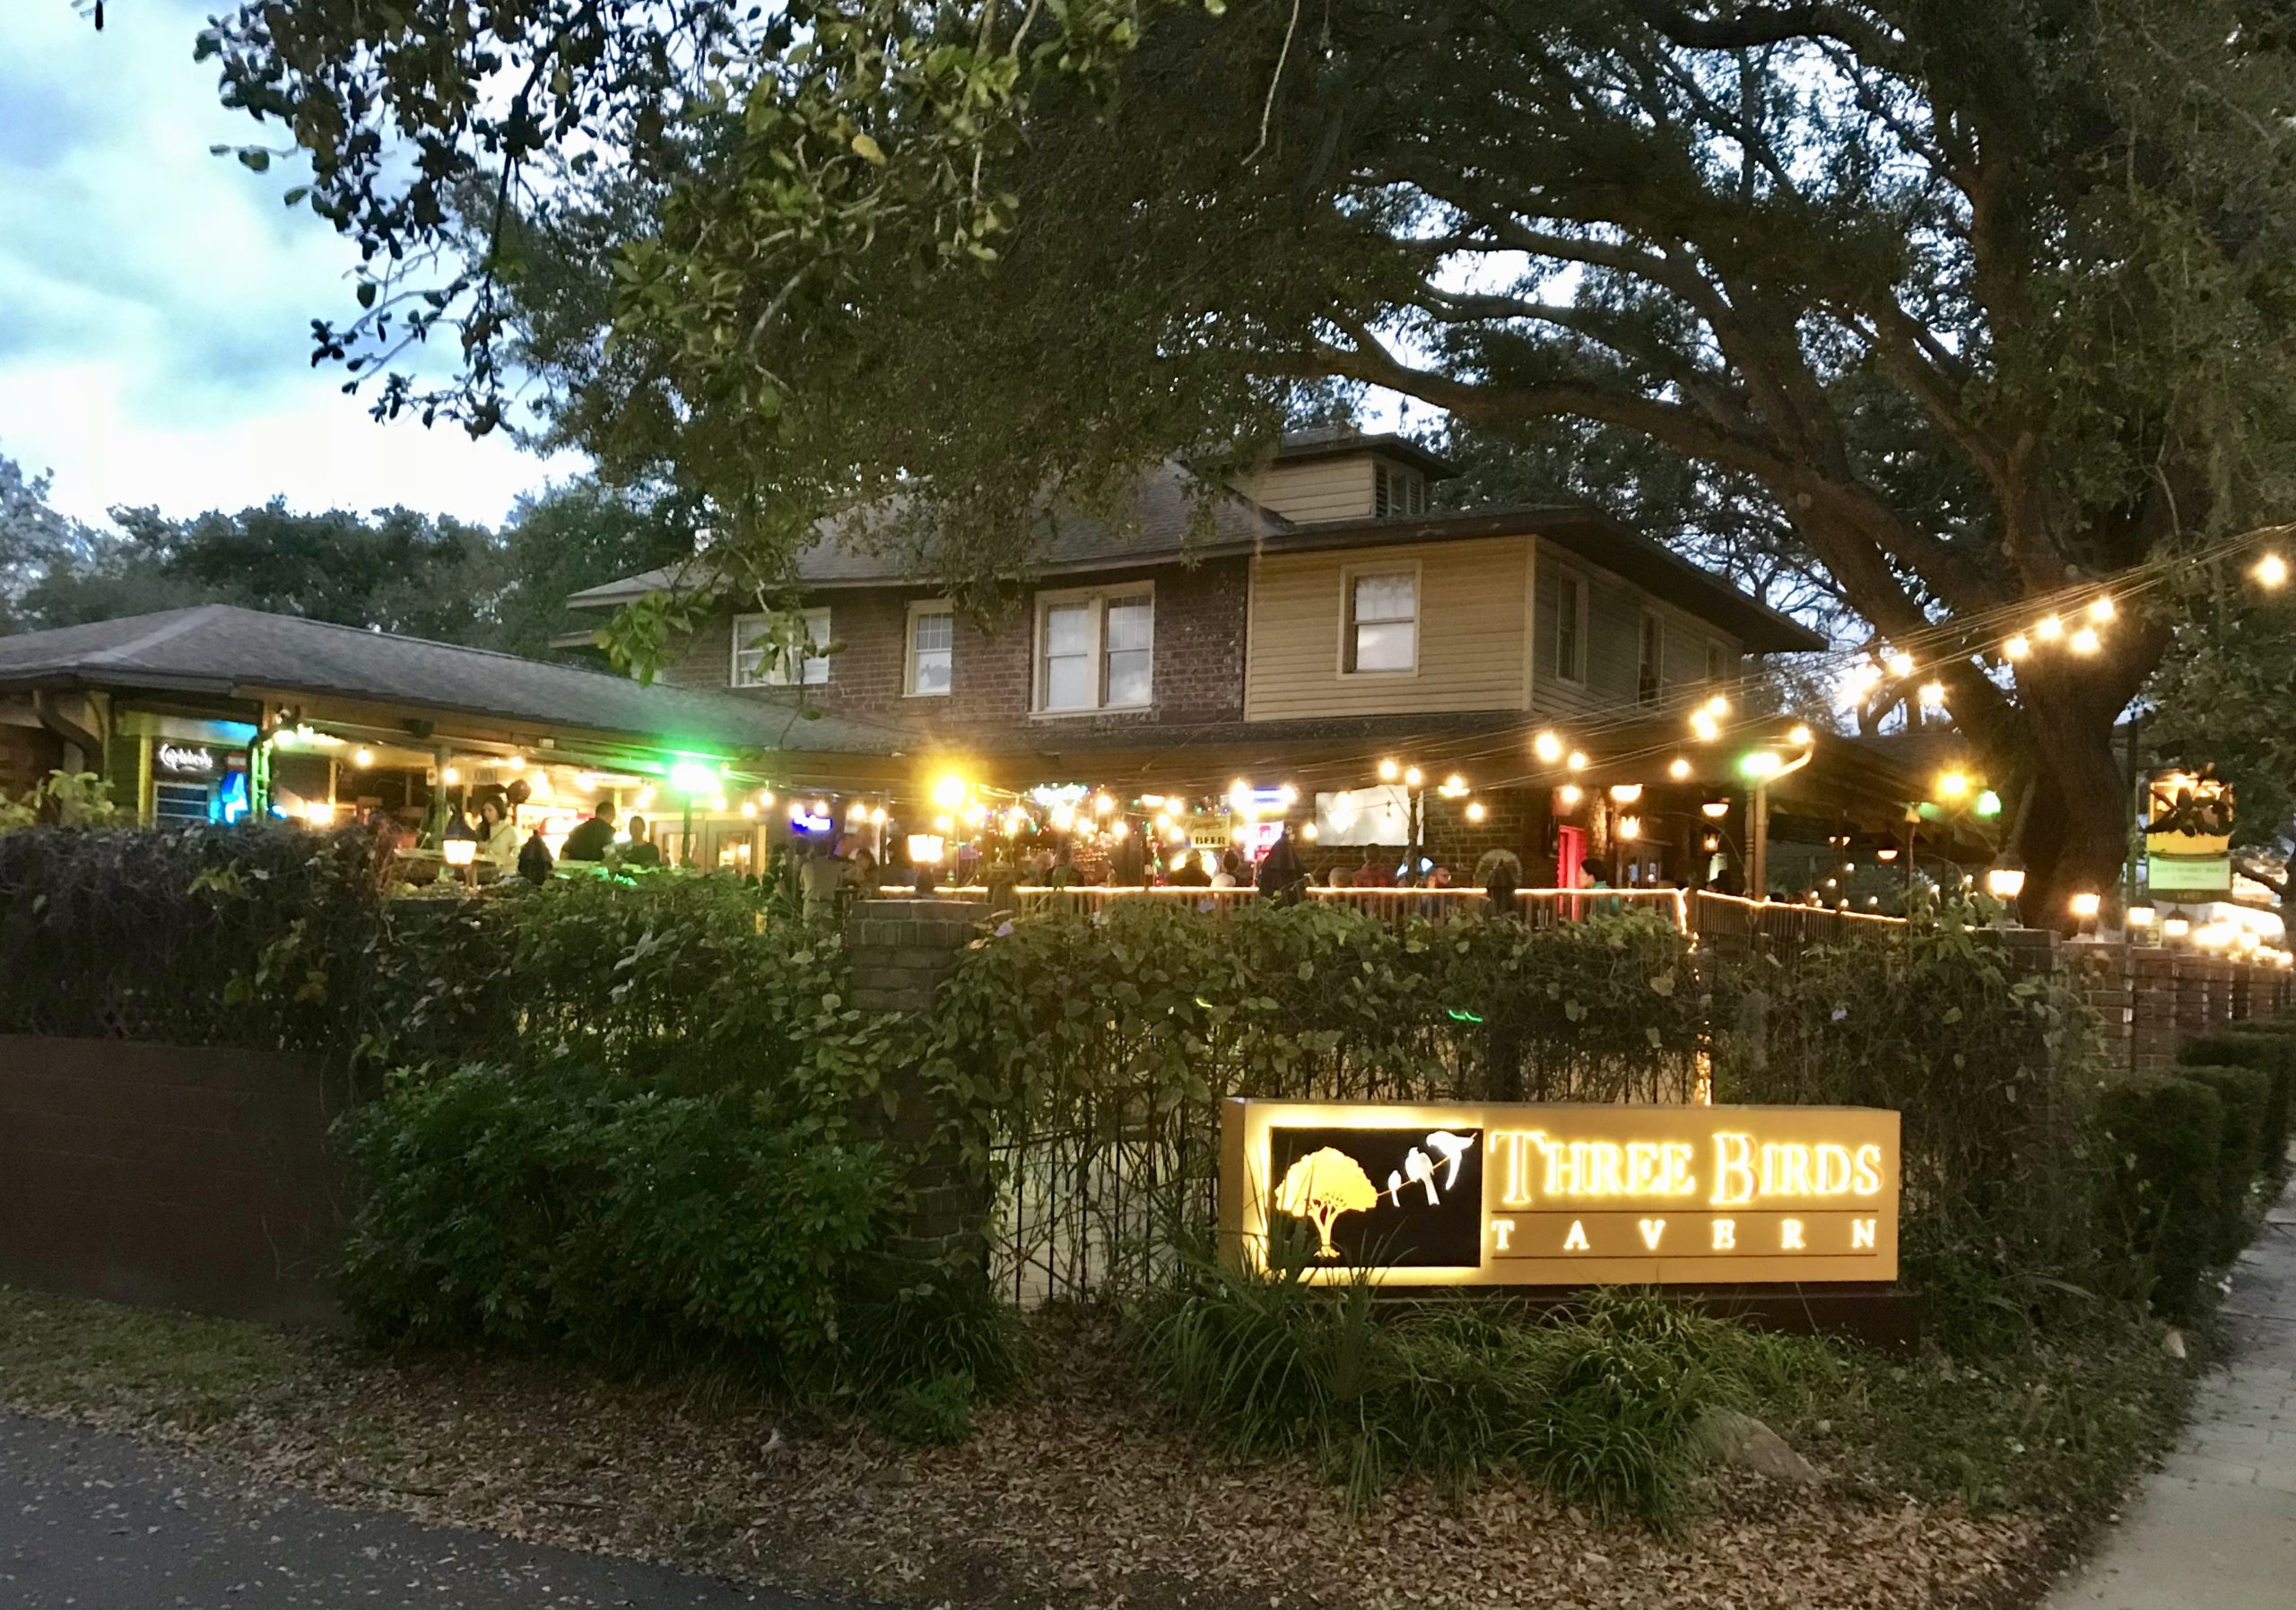 Three Birds Tavern Soars: Don't Worry 'Bout a Thing…